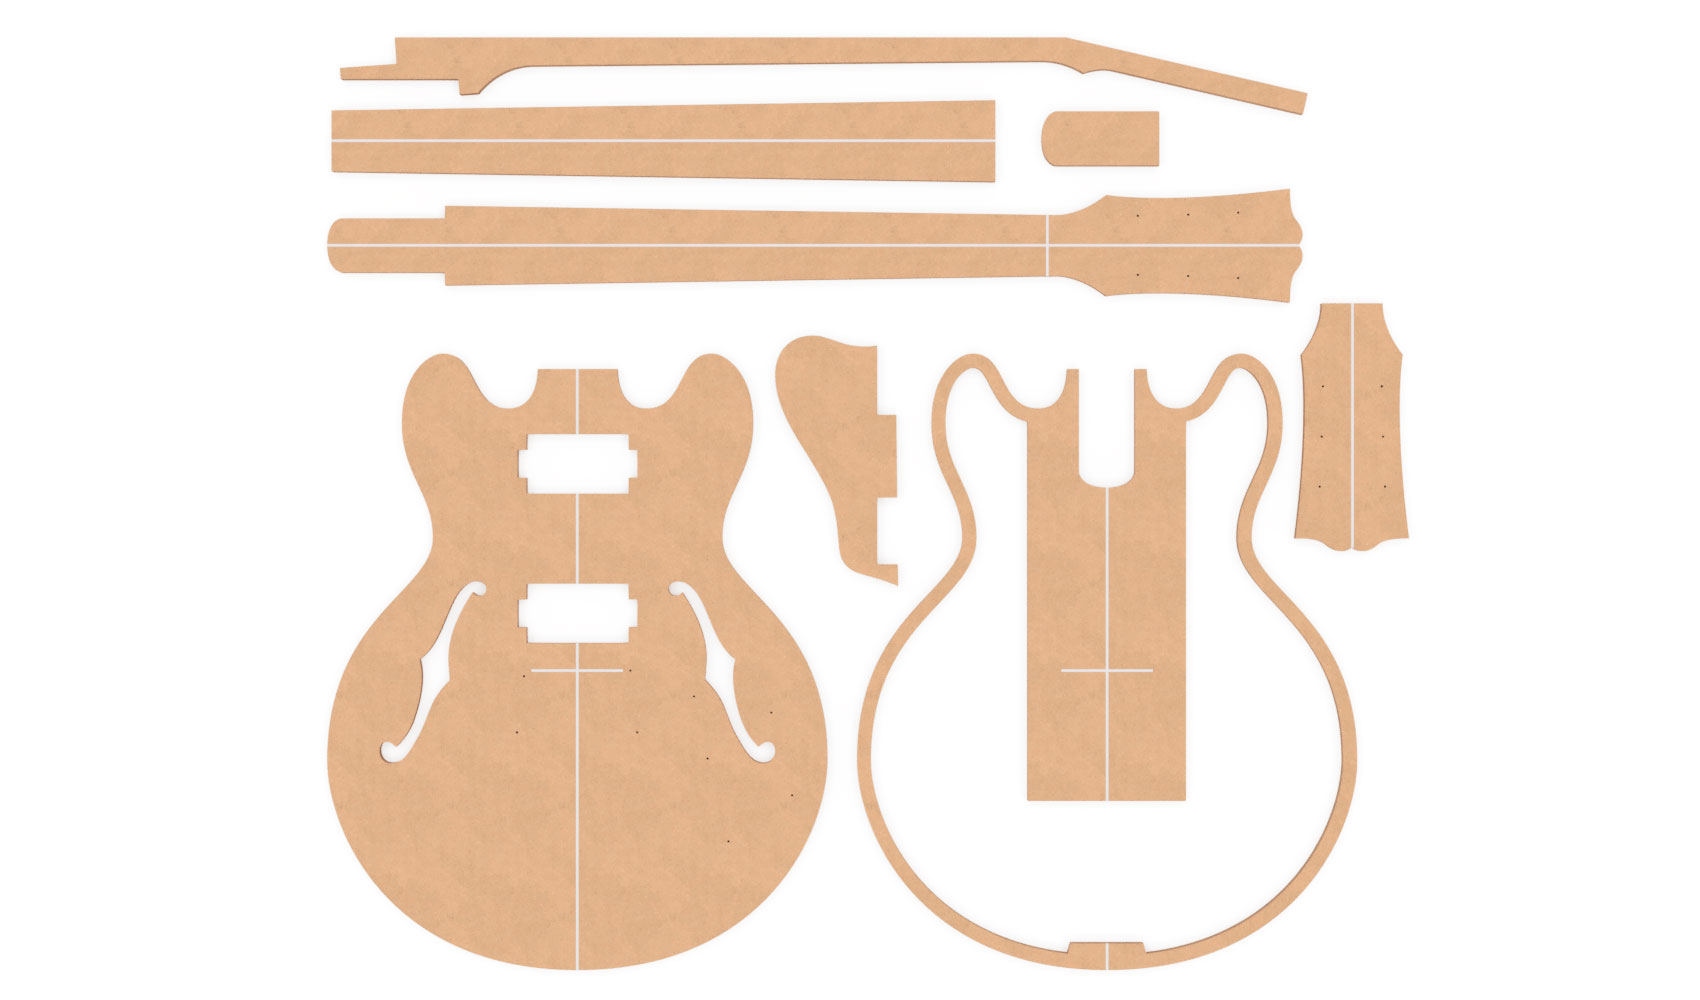 Gibson ES-339 Router Templates